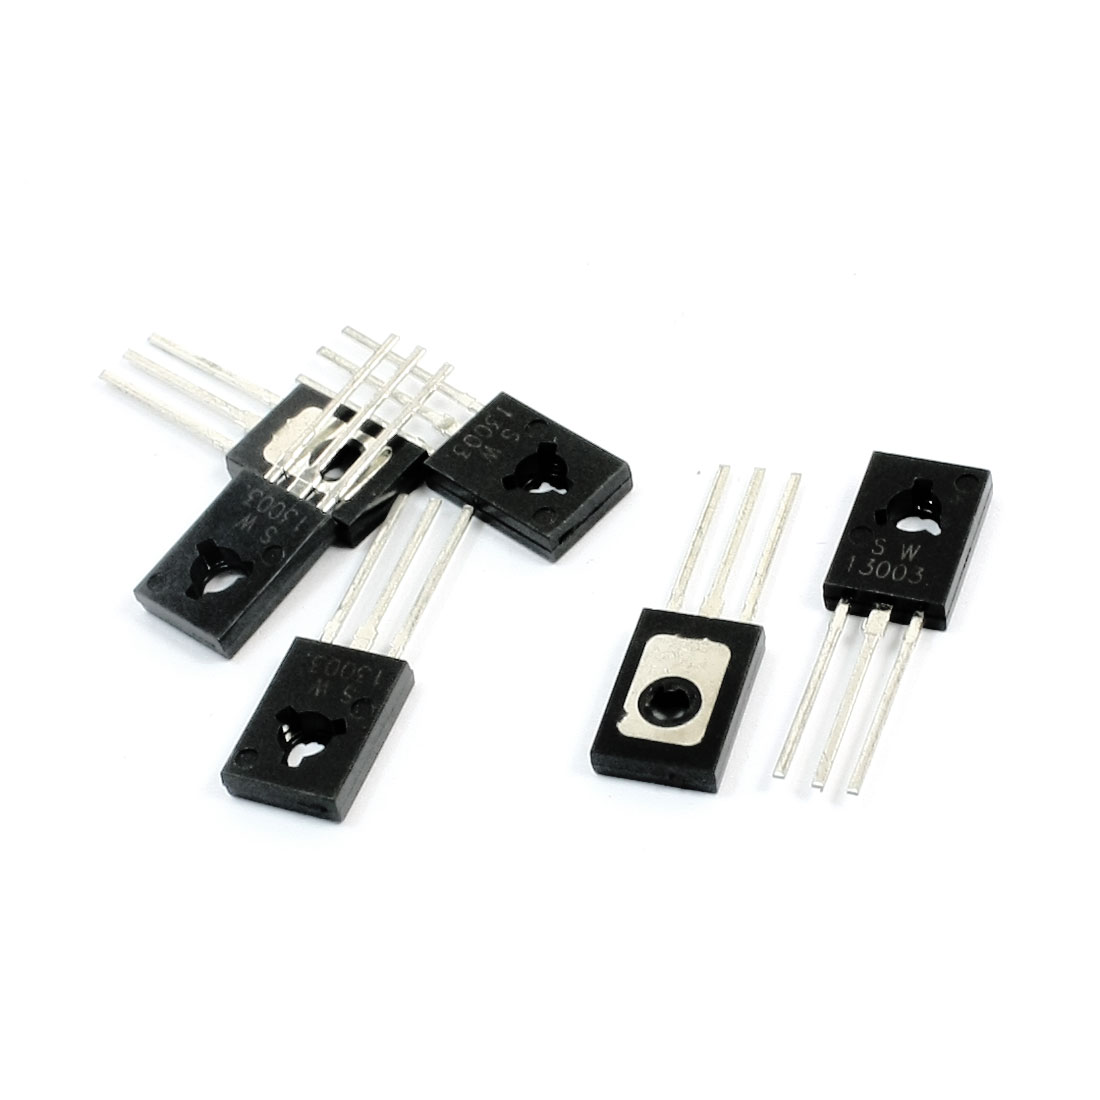 6 Pcs 13003 TO-126 NPN Through Hole General Purpose Electric Component Bipolar Power Transistor 500V 0.3A